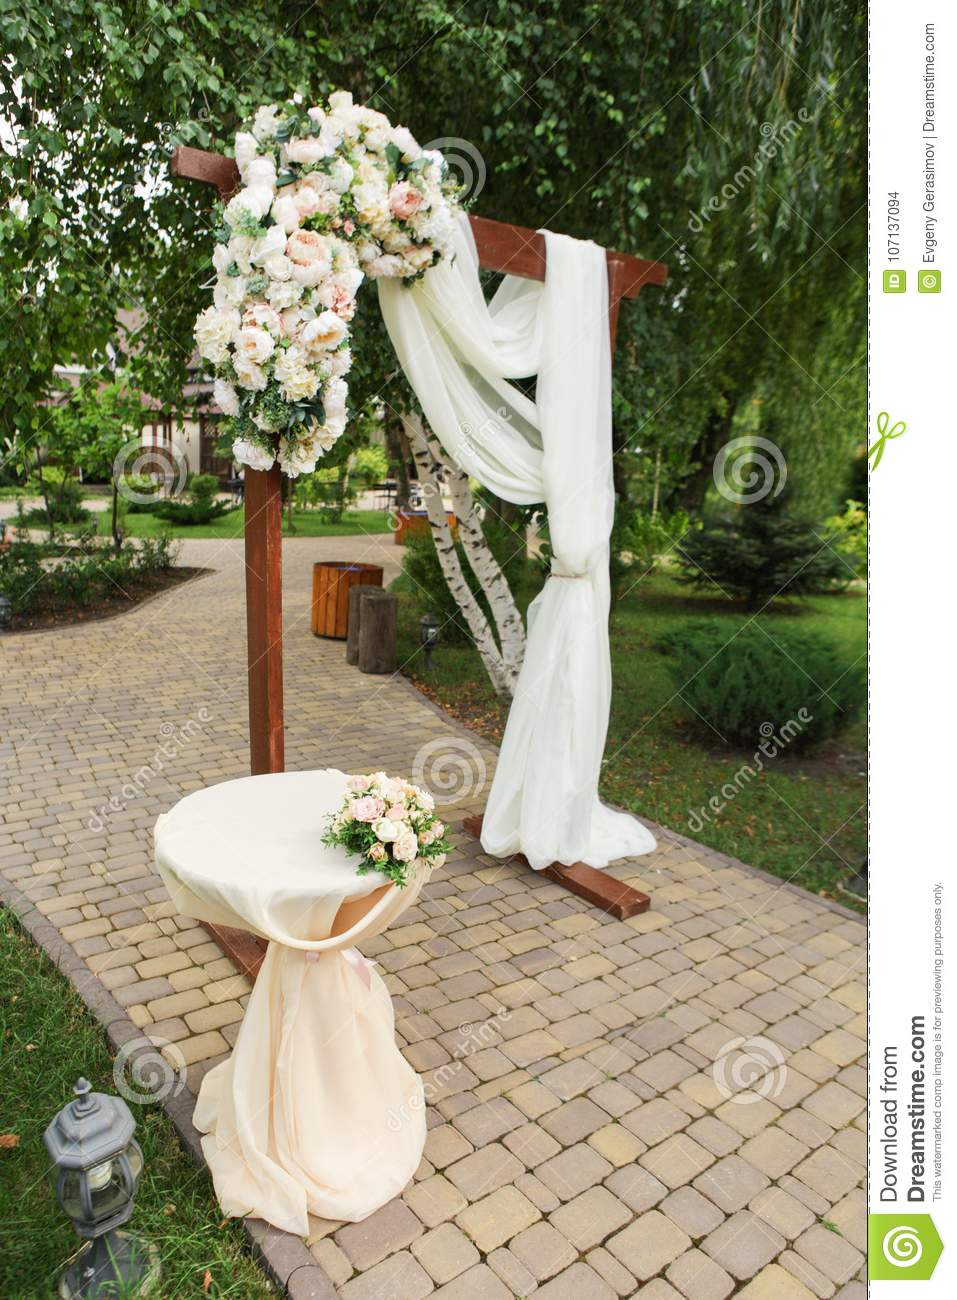 Wedding arch decorated with fresh flowers stock photo image of wedding arch decorated with fabric and fresh flowers junglespirit Choice Image